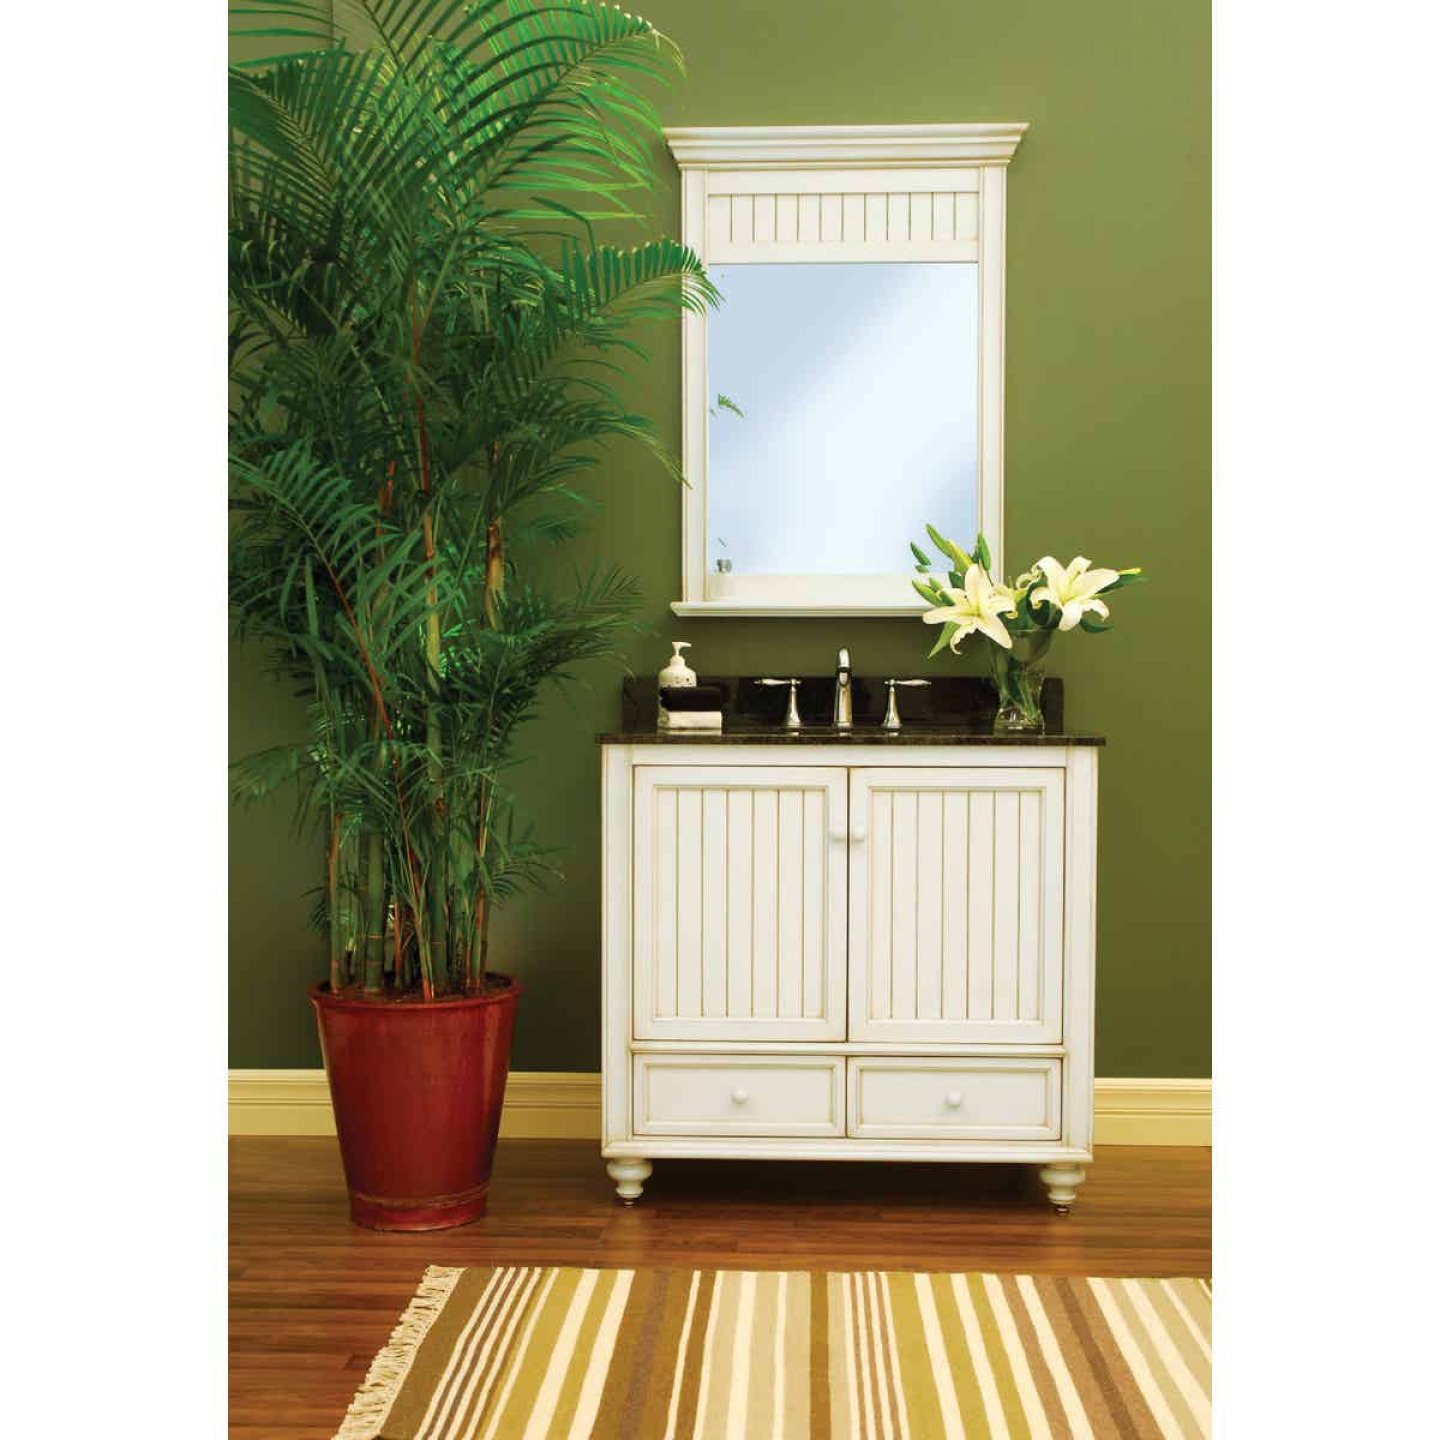 Sunny Wood Bristol Beach White 30 In. W x 40 In. H Vanity Mirror Image 2